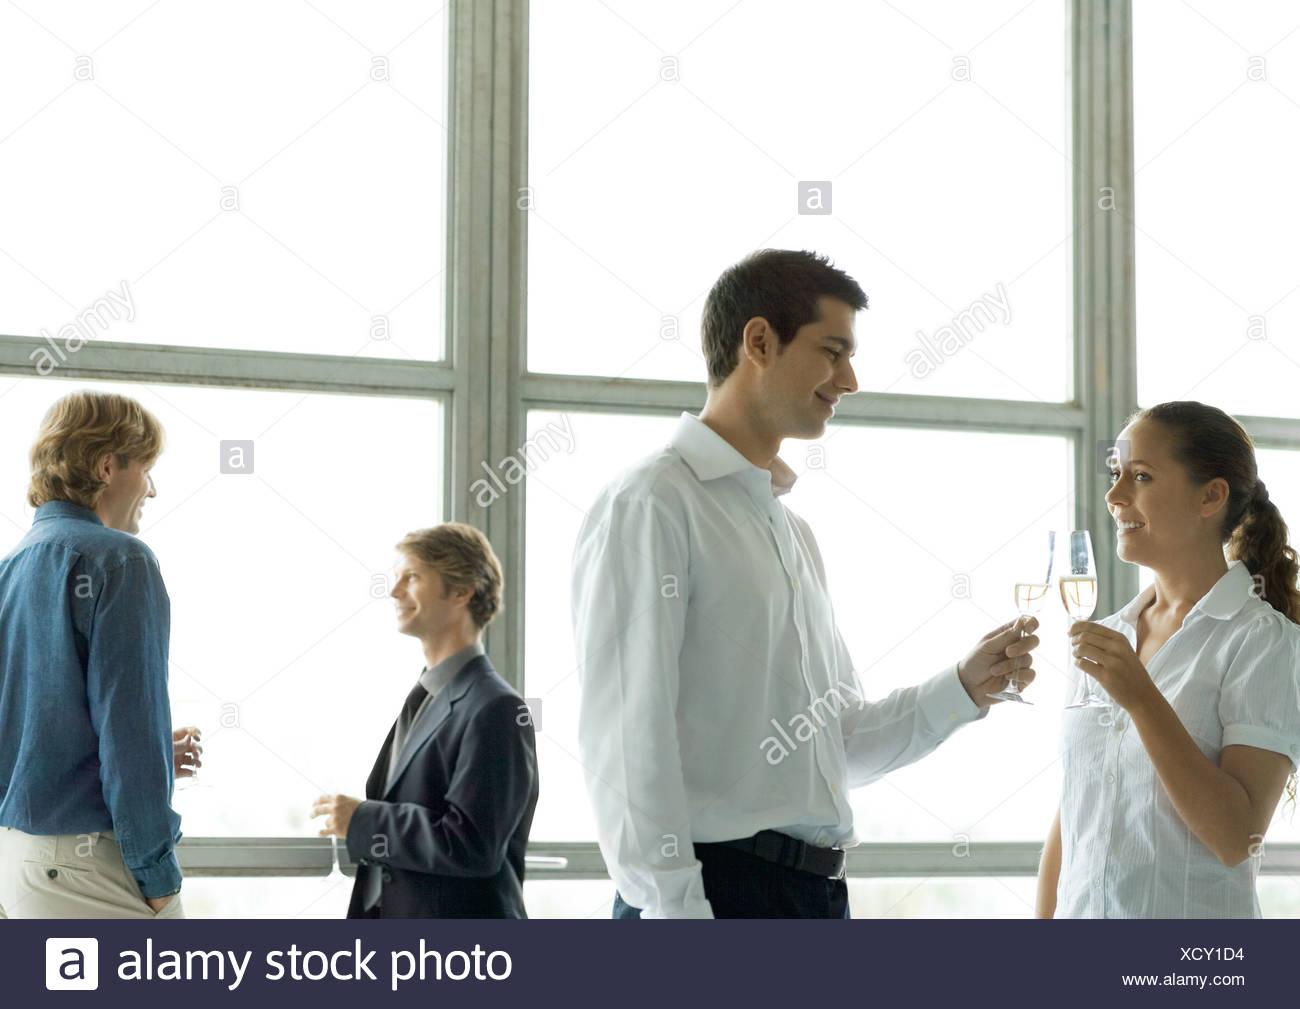 People talking during office party, holding glasses of champagne - Stock Image